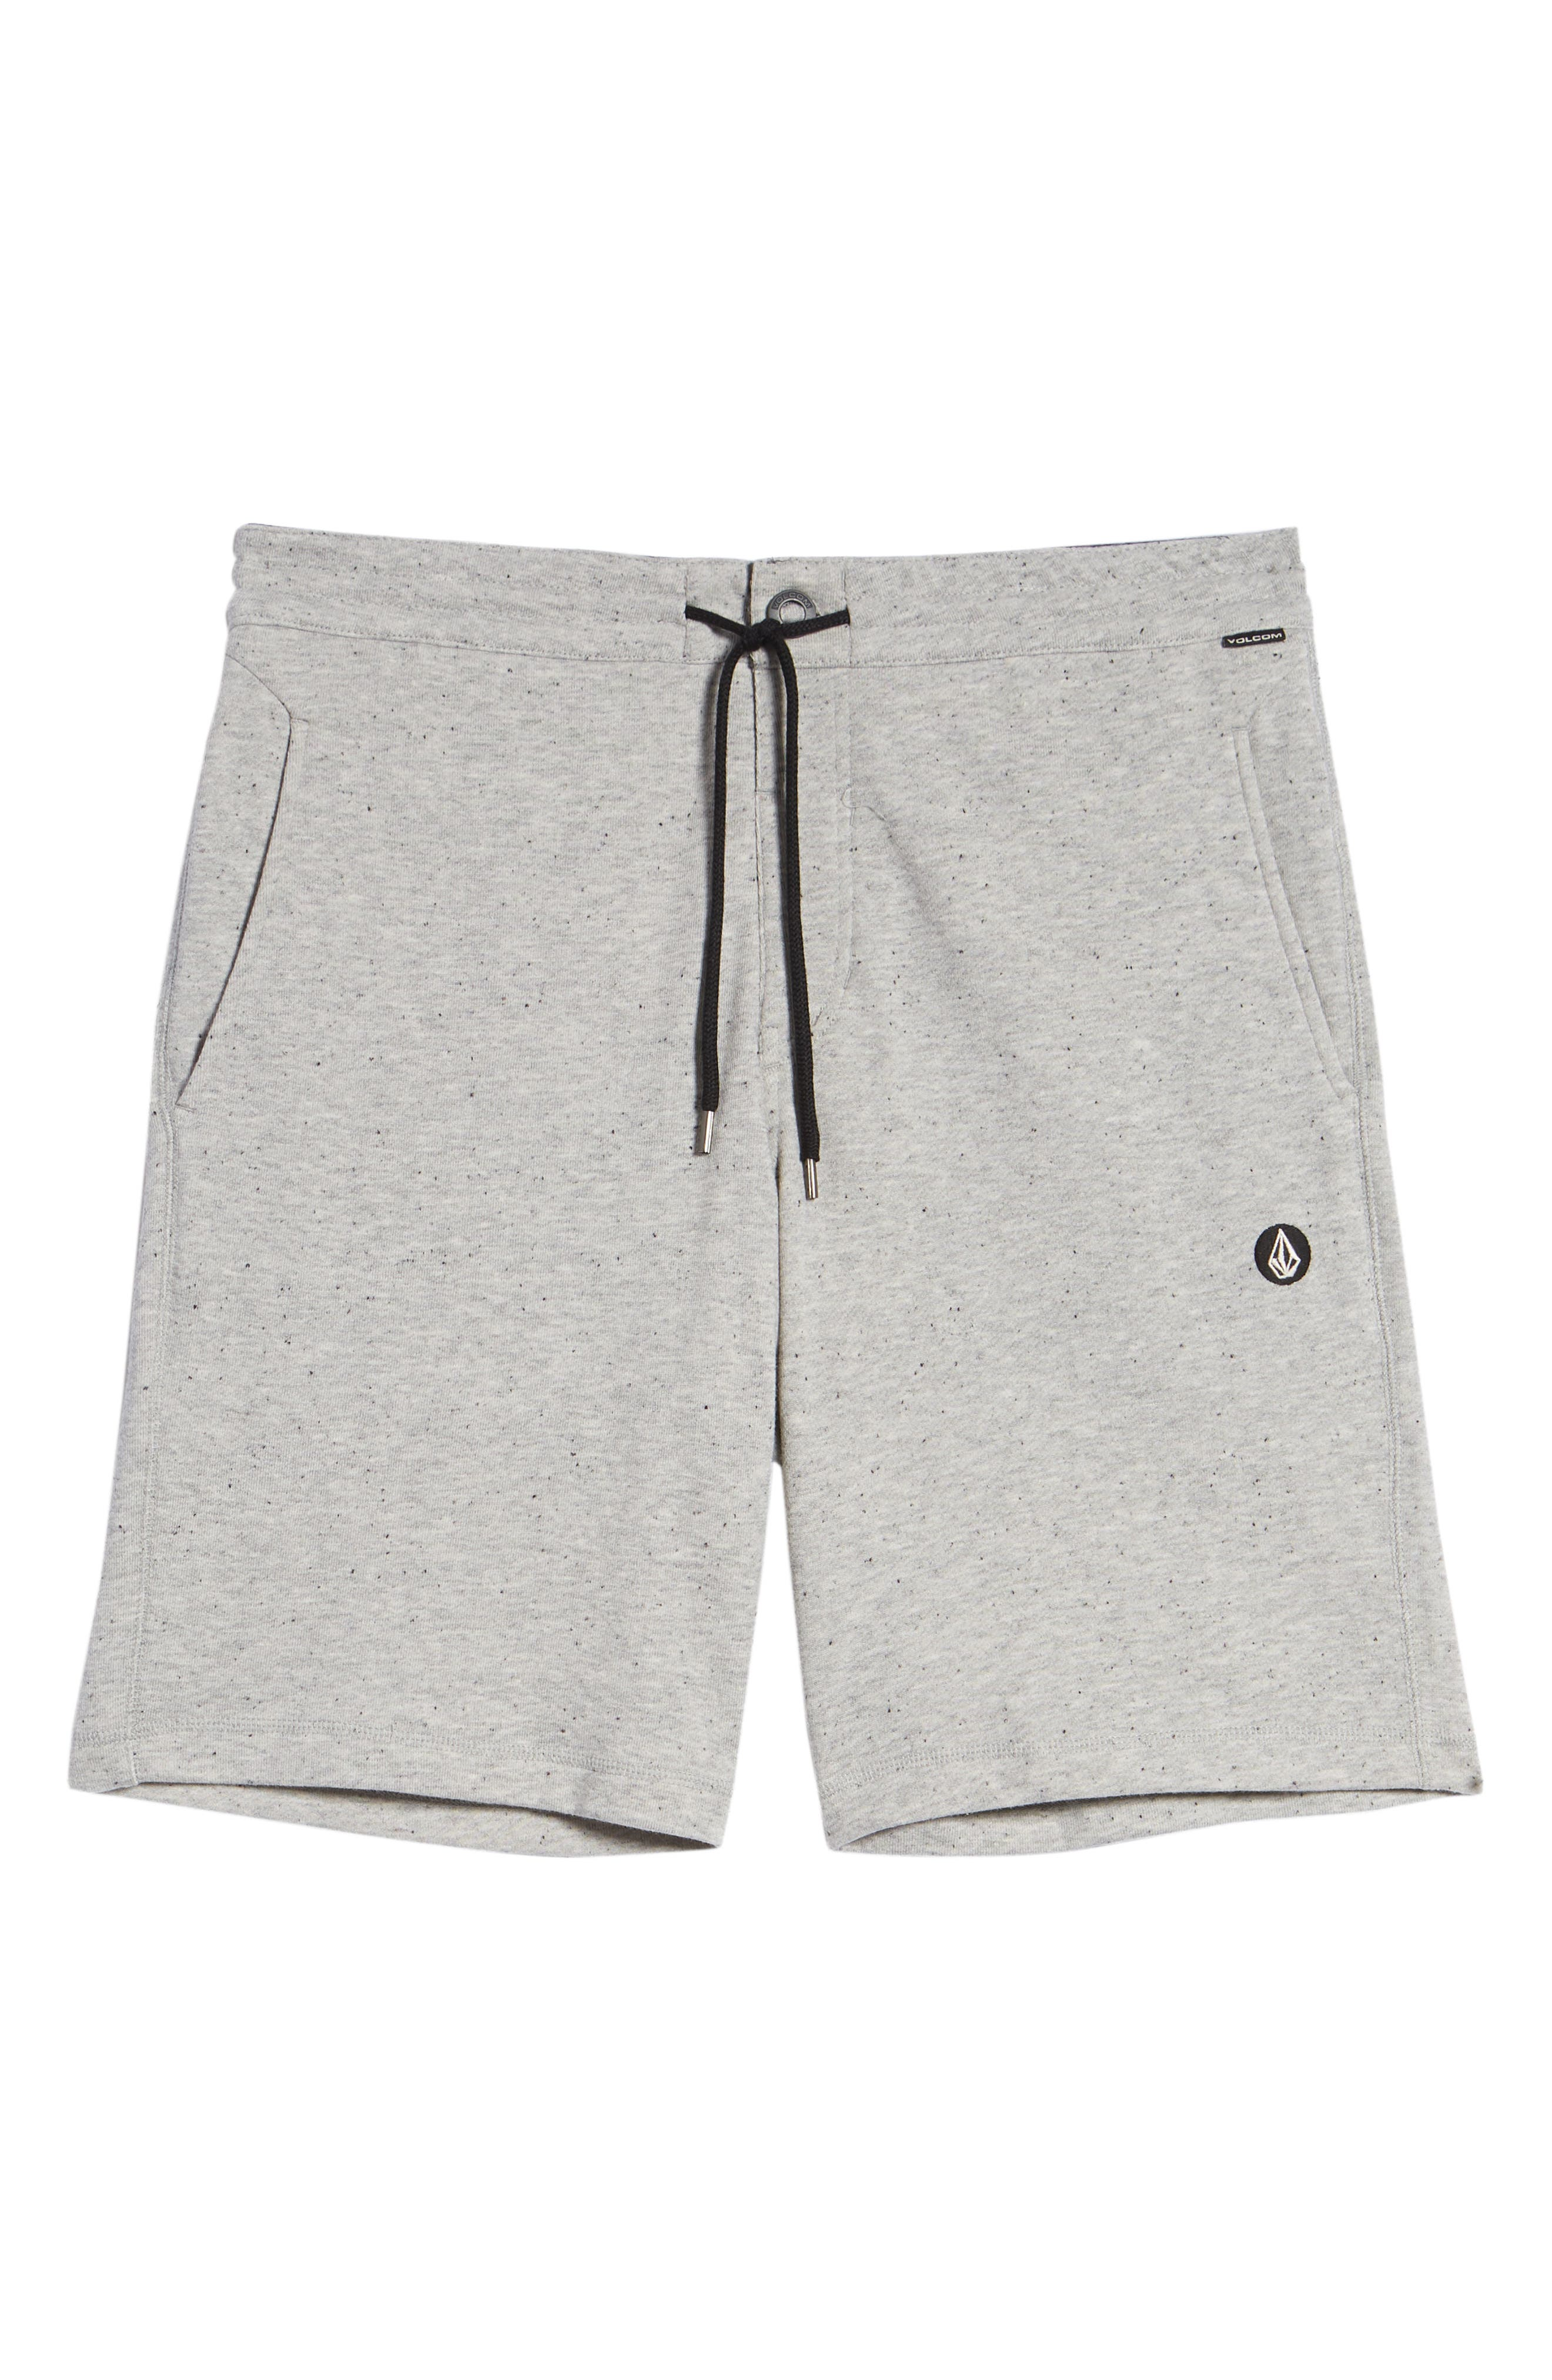 Chiller Shorts,                         Main,                         color, Grey